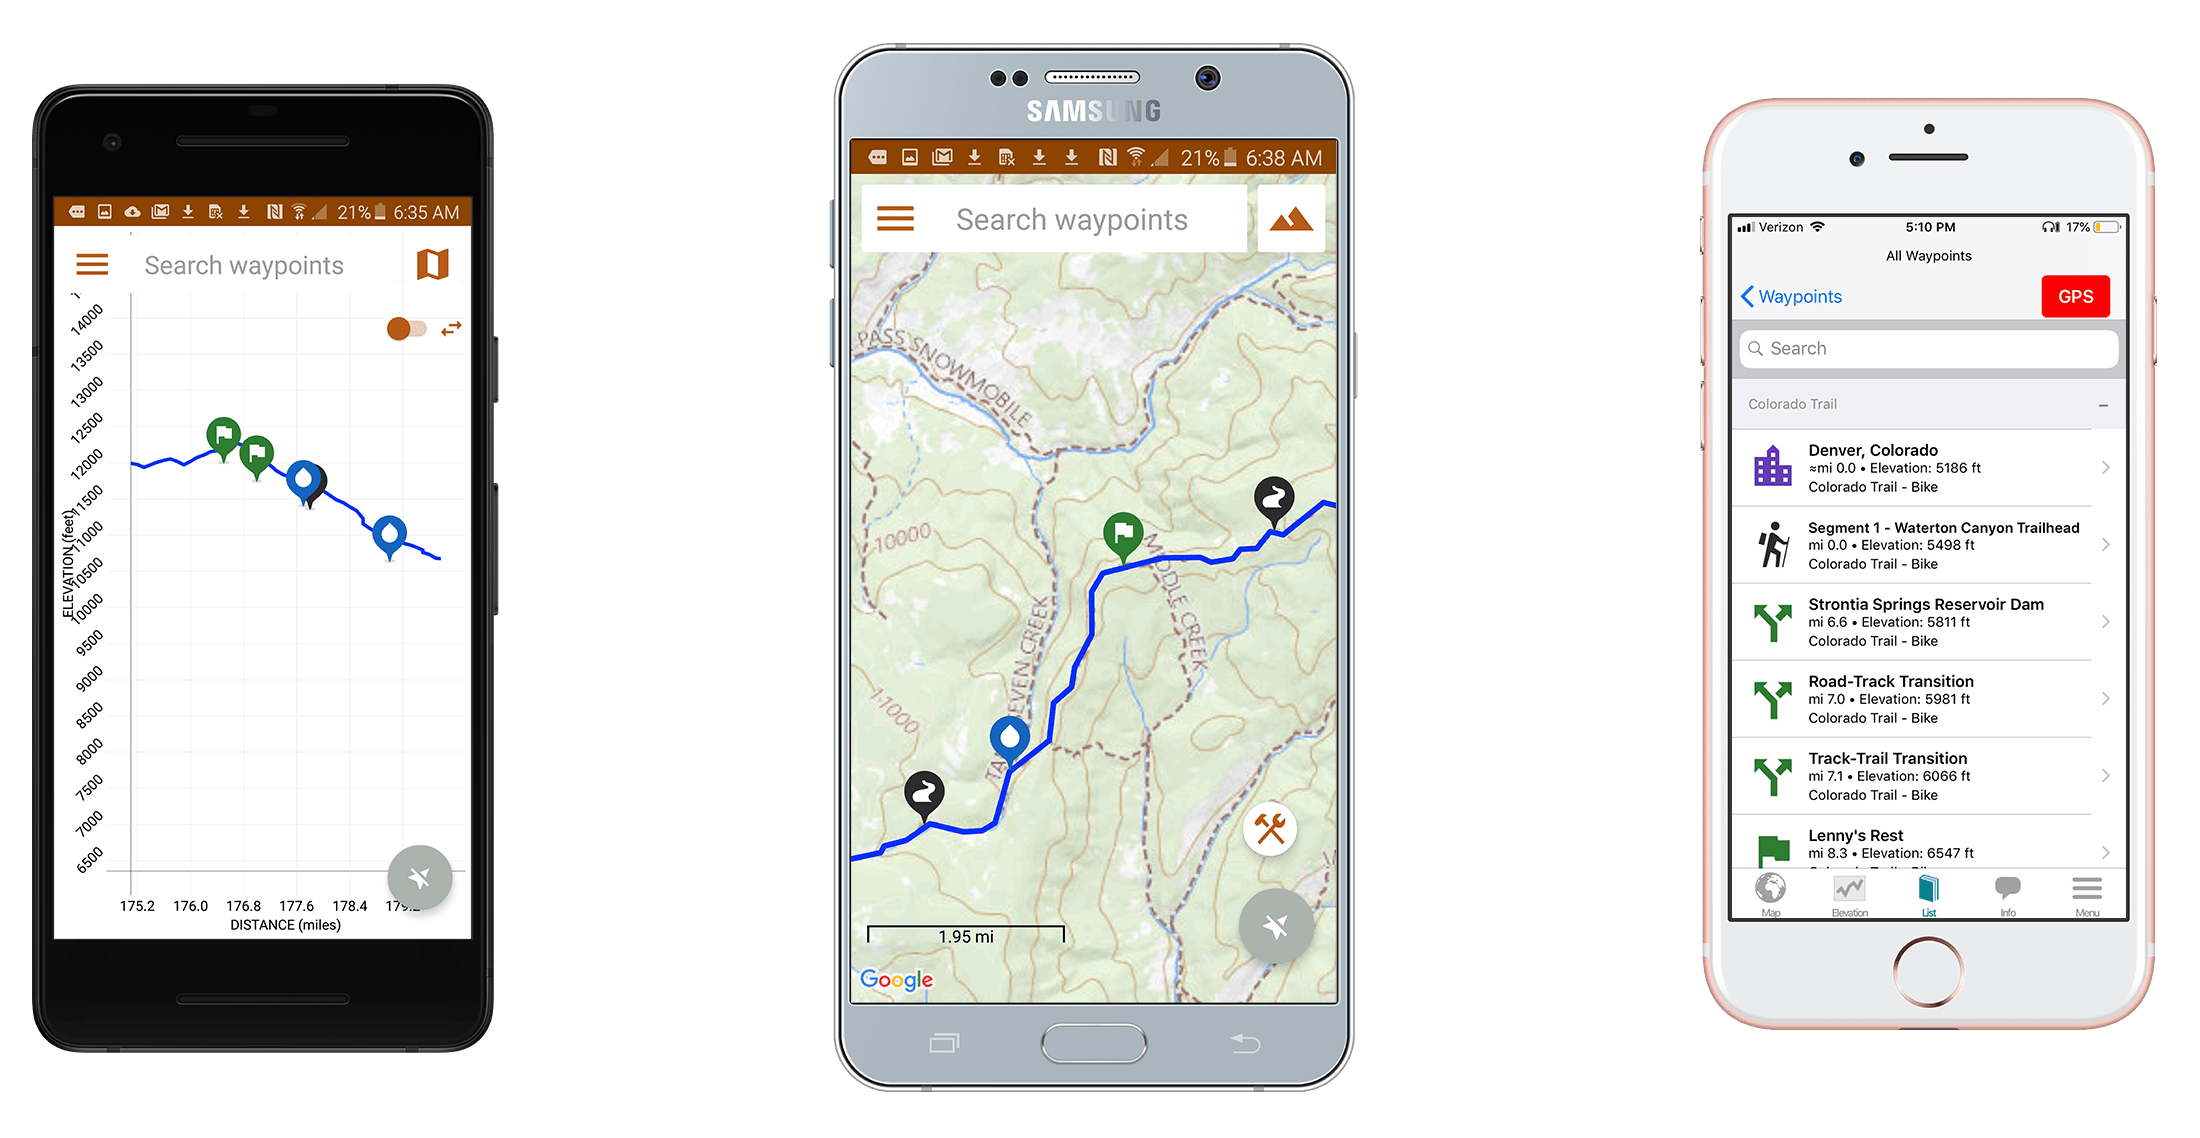 Screenshots of the Knobby Guides Colorado Trail Bike Route guide.